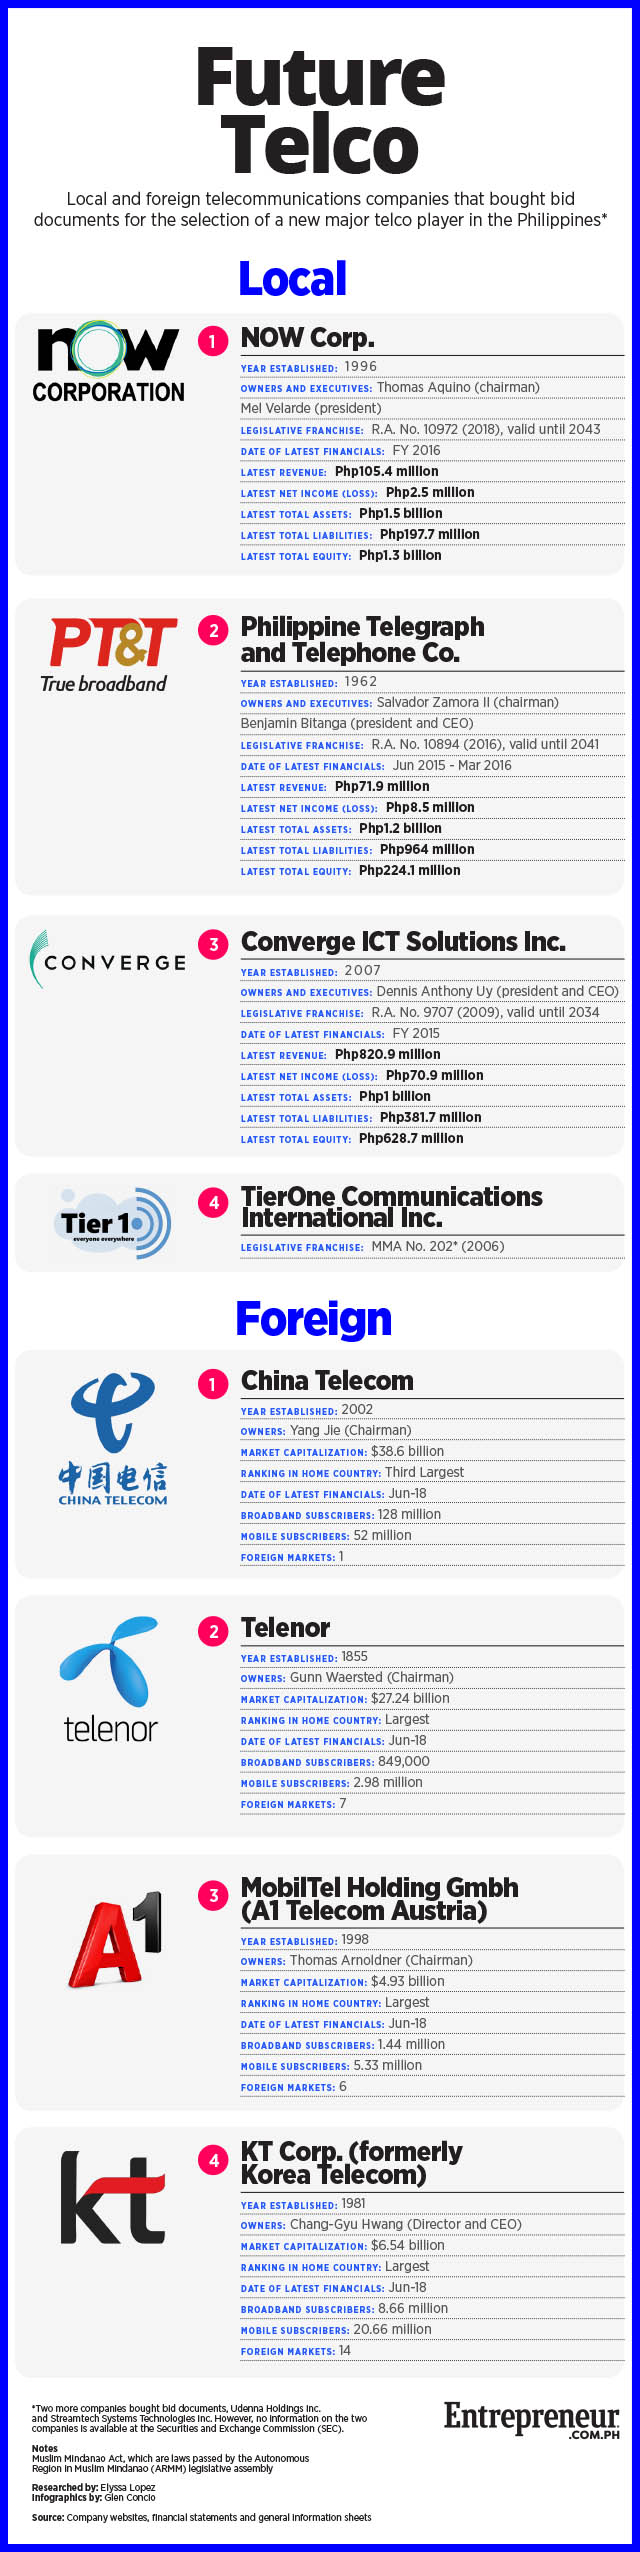 Meet the Contenders for the 3rd Telco Player in PH